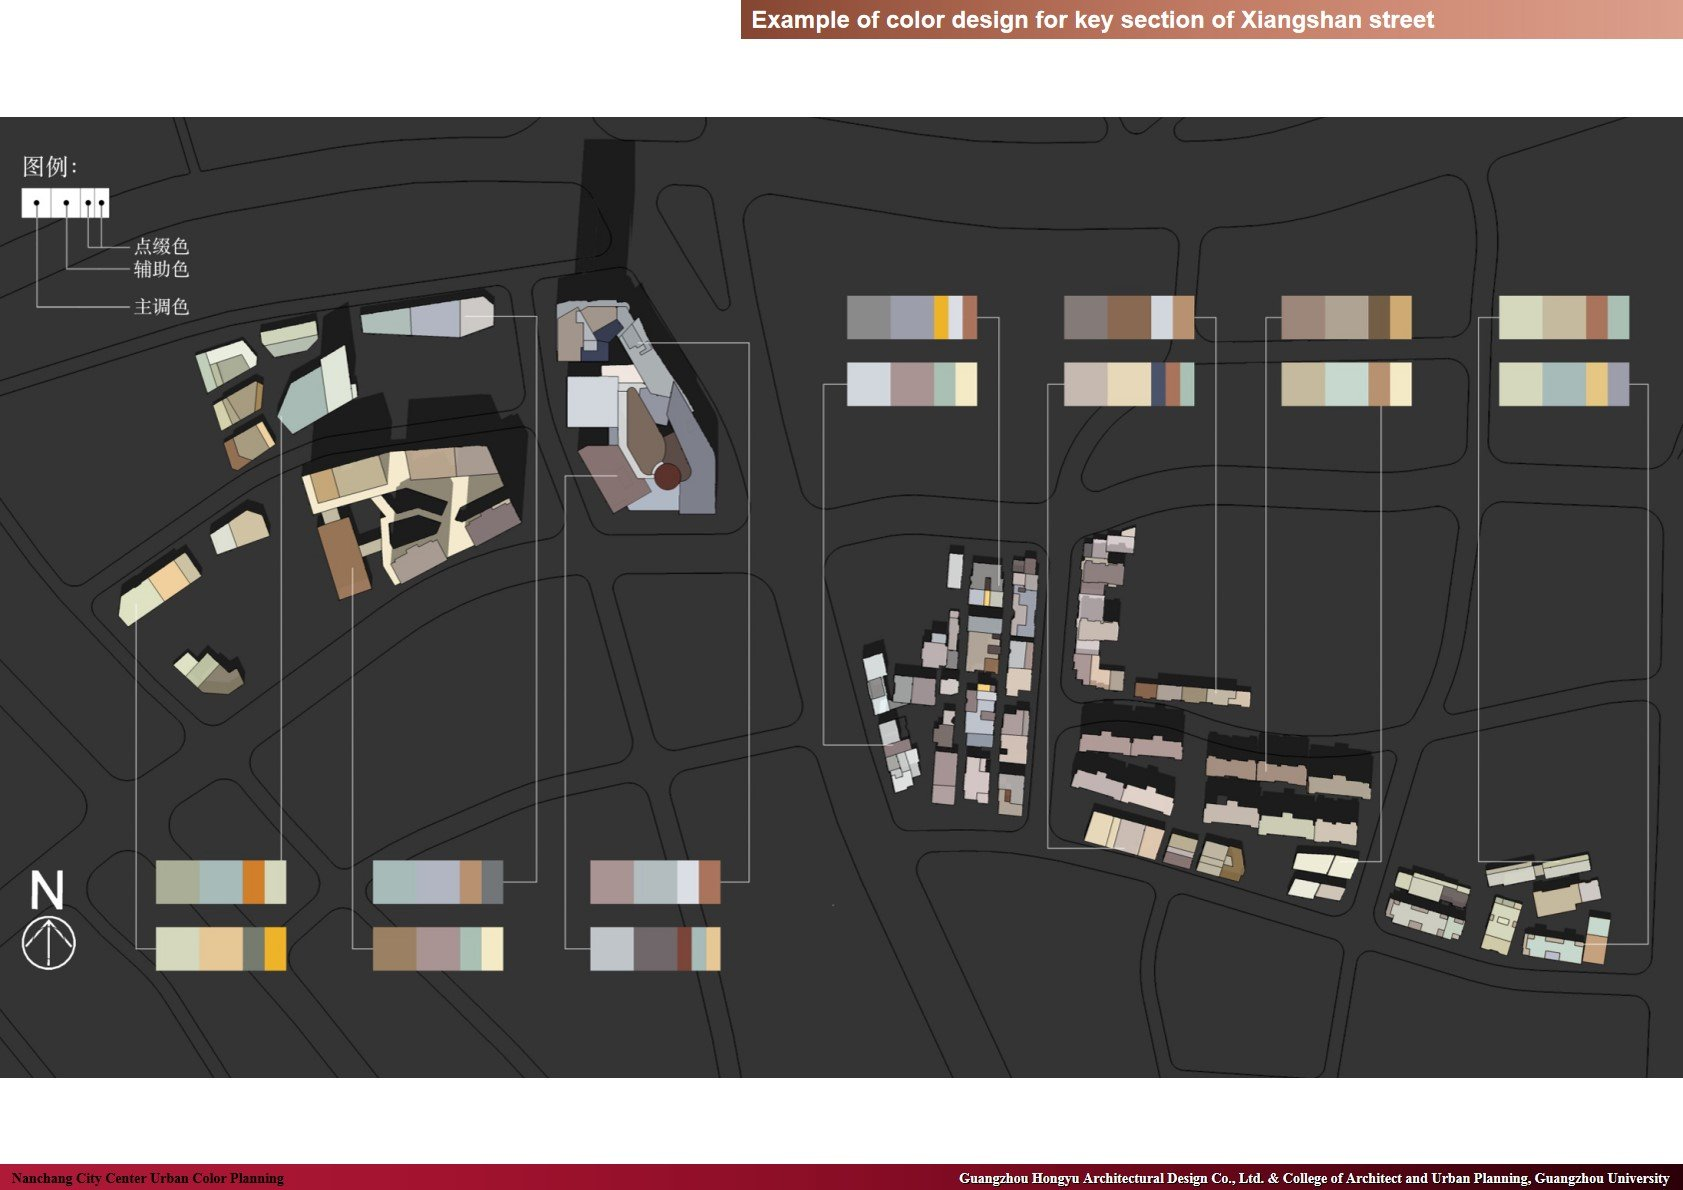 Example of color design for key section of Cross street 1 Guangzhou Hongyu Architectural Design Co., Ltd. & College of Architect and Urban Planning, Guangzhou University}